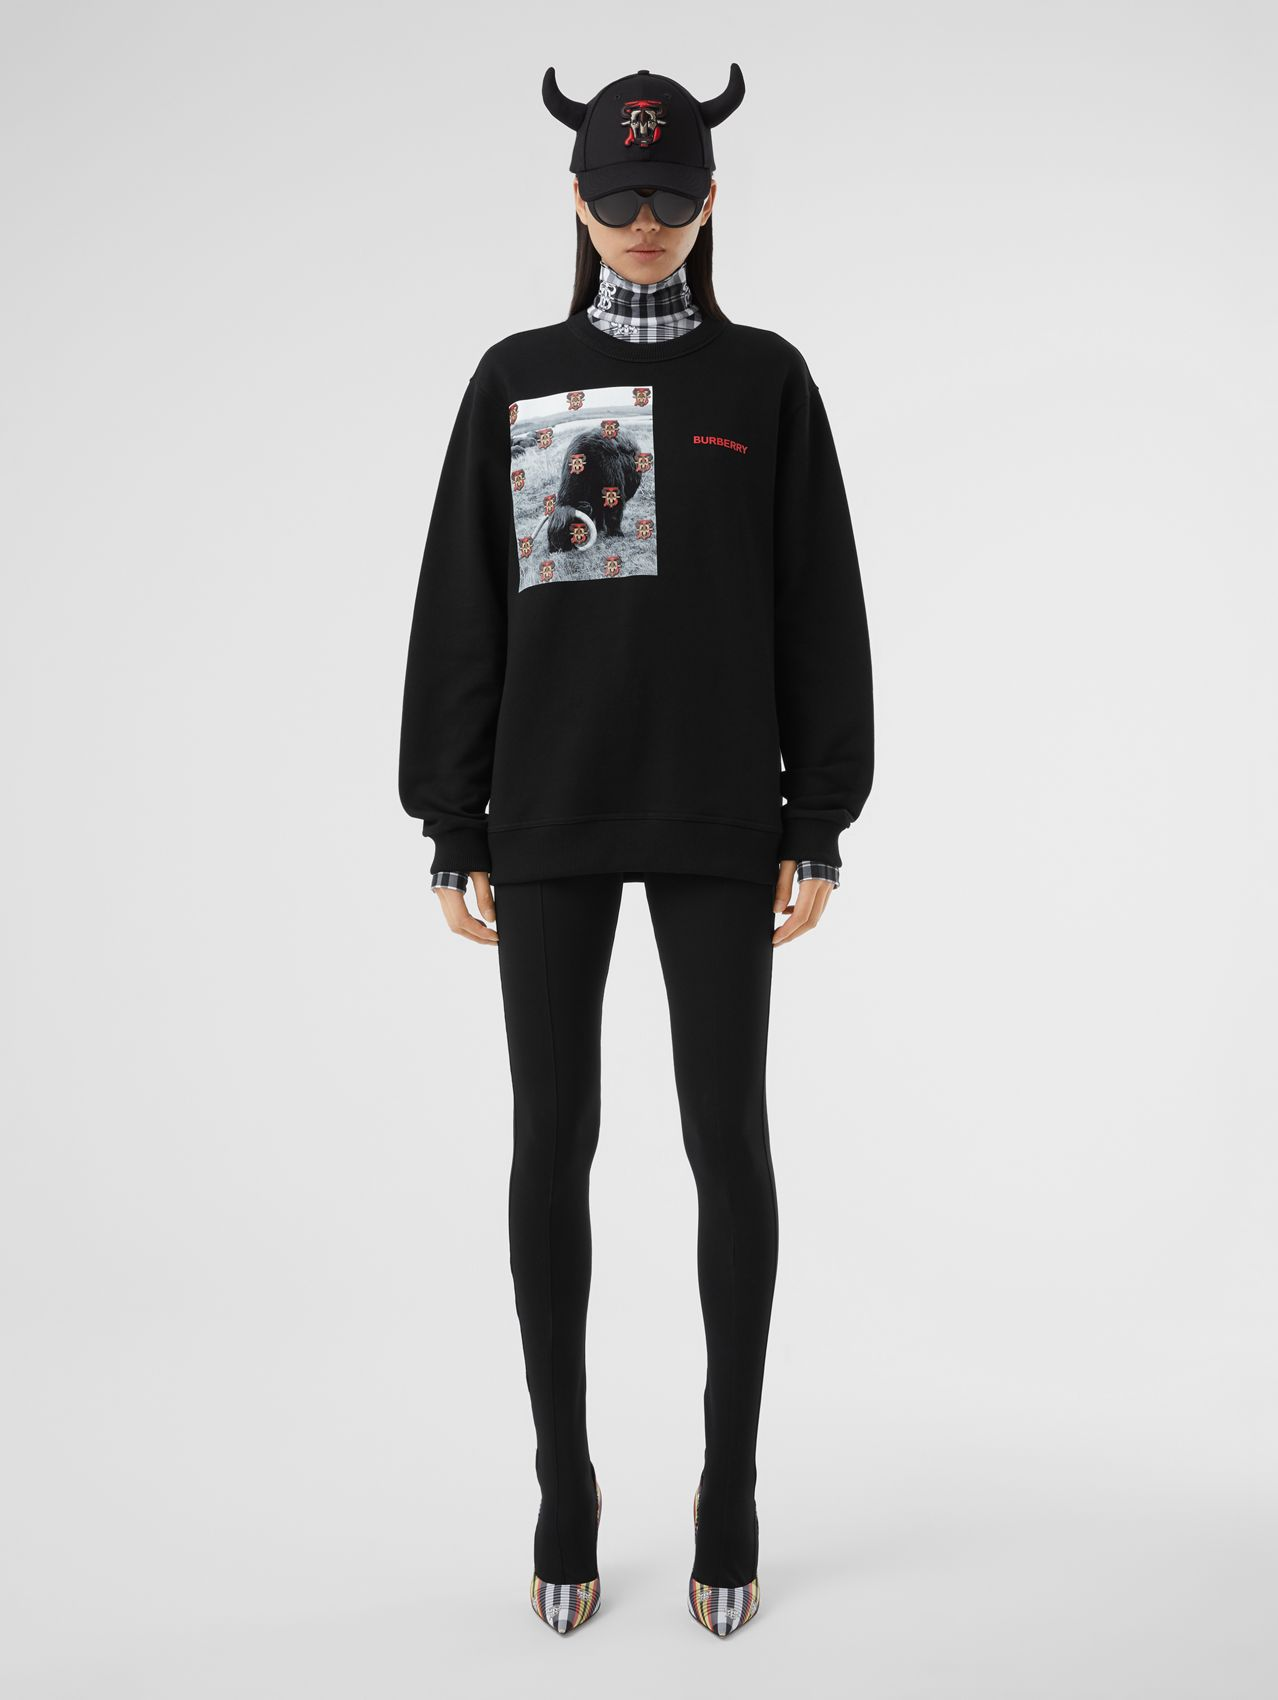 Montage Print Cotton Sweatshirt – Unisex in Black